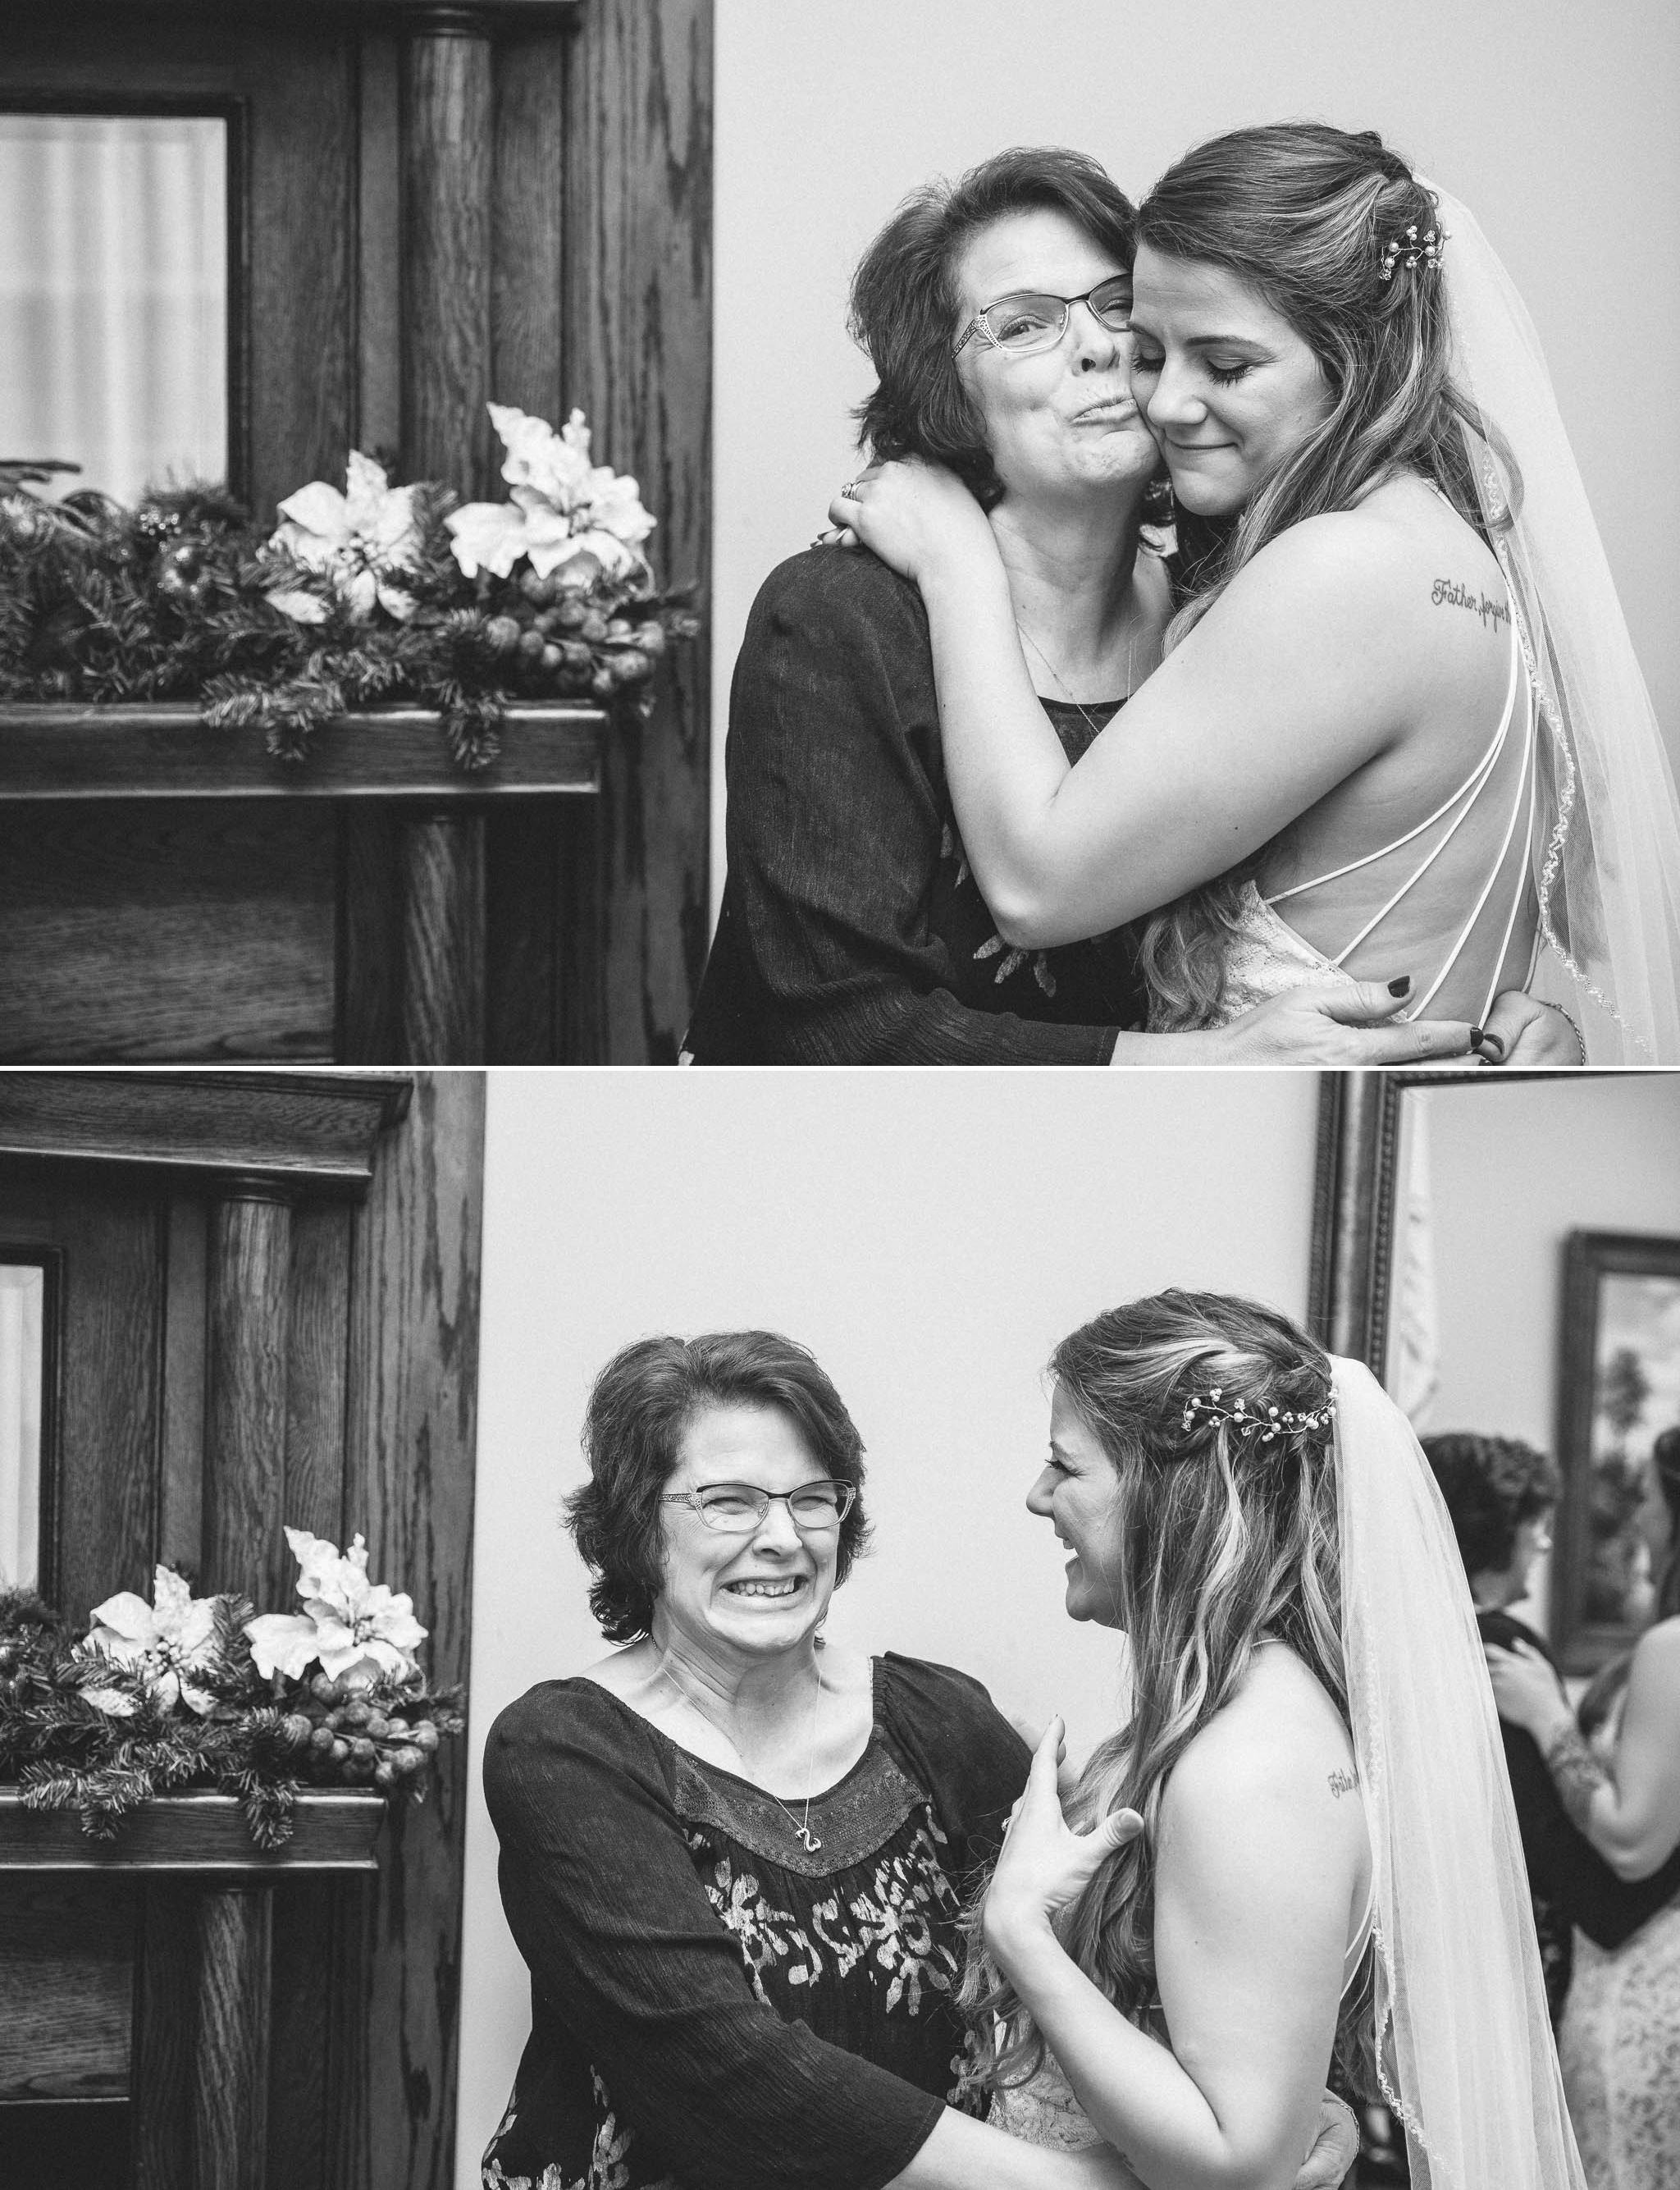 Bride and her mother before the wedding - Jessica + Brandon - Snowy Winter Wedding at the Rand Bryan House in Garner, NC - Raleigh North Carolina Wedding Photographer